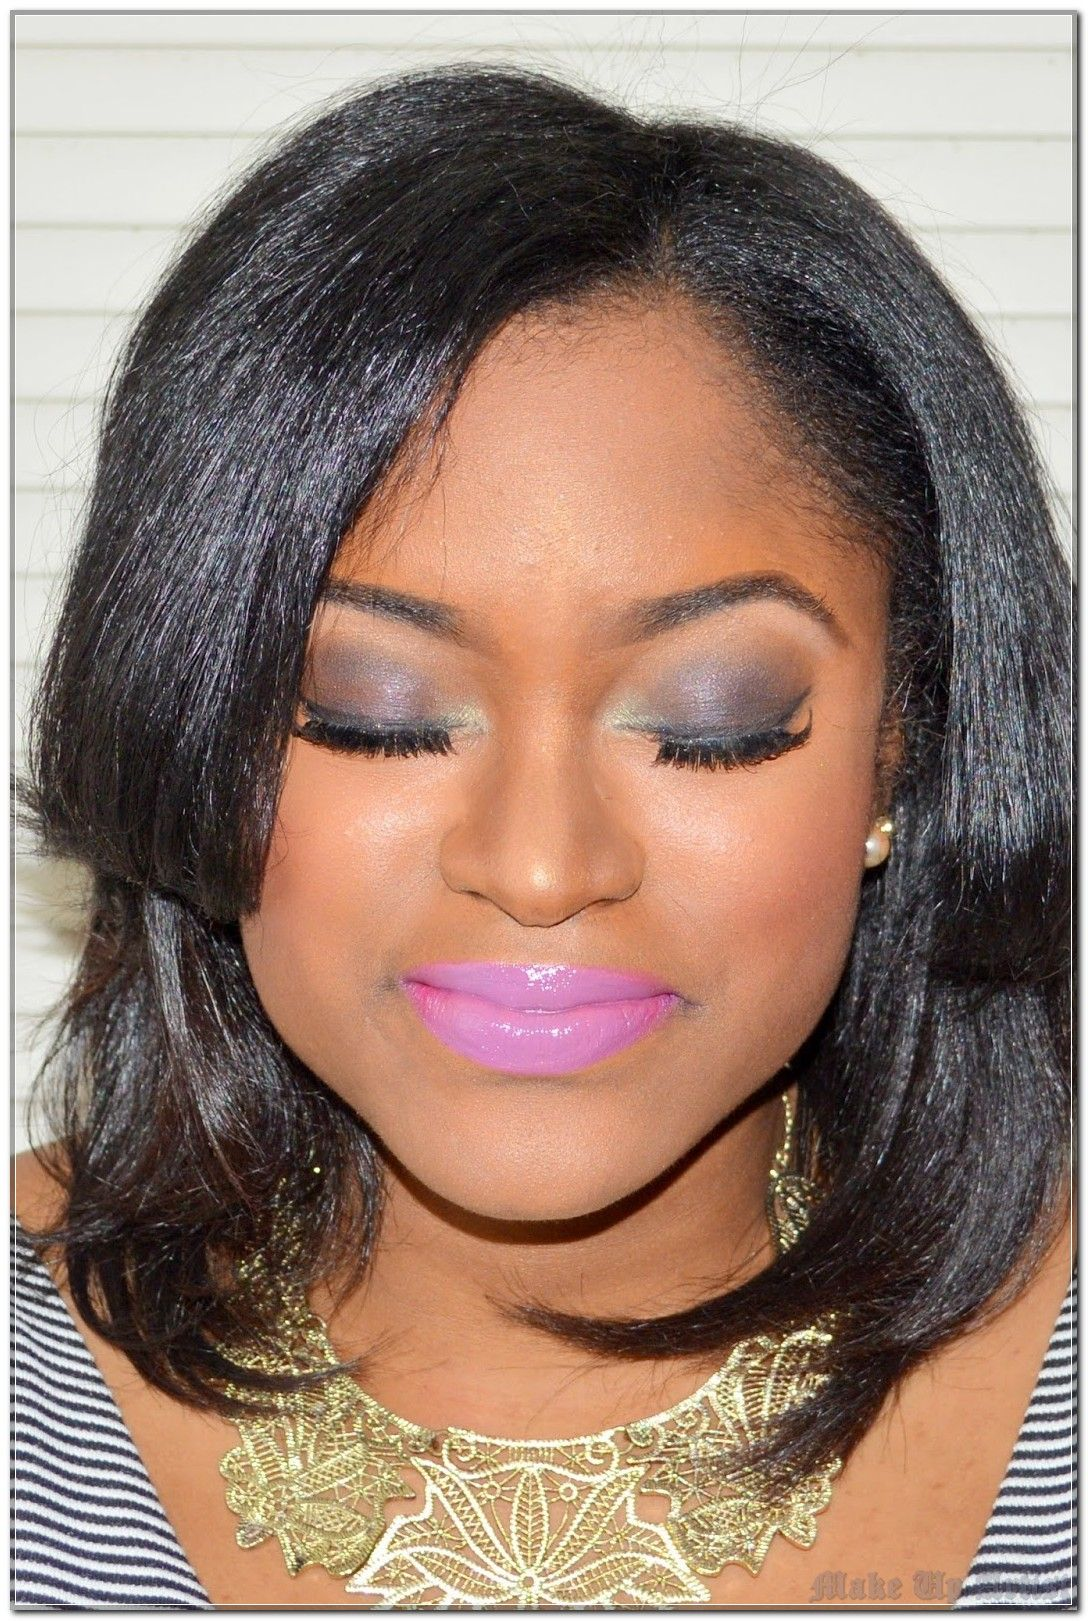 How To Make Your Make Up Artist Look Amazing In 5 Days